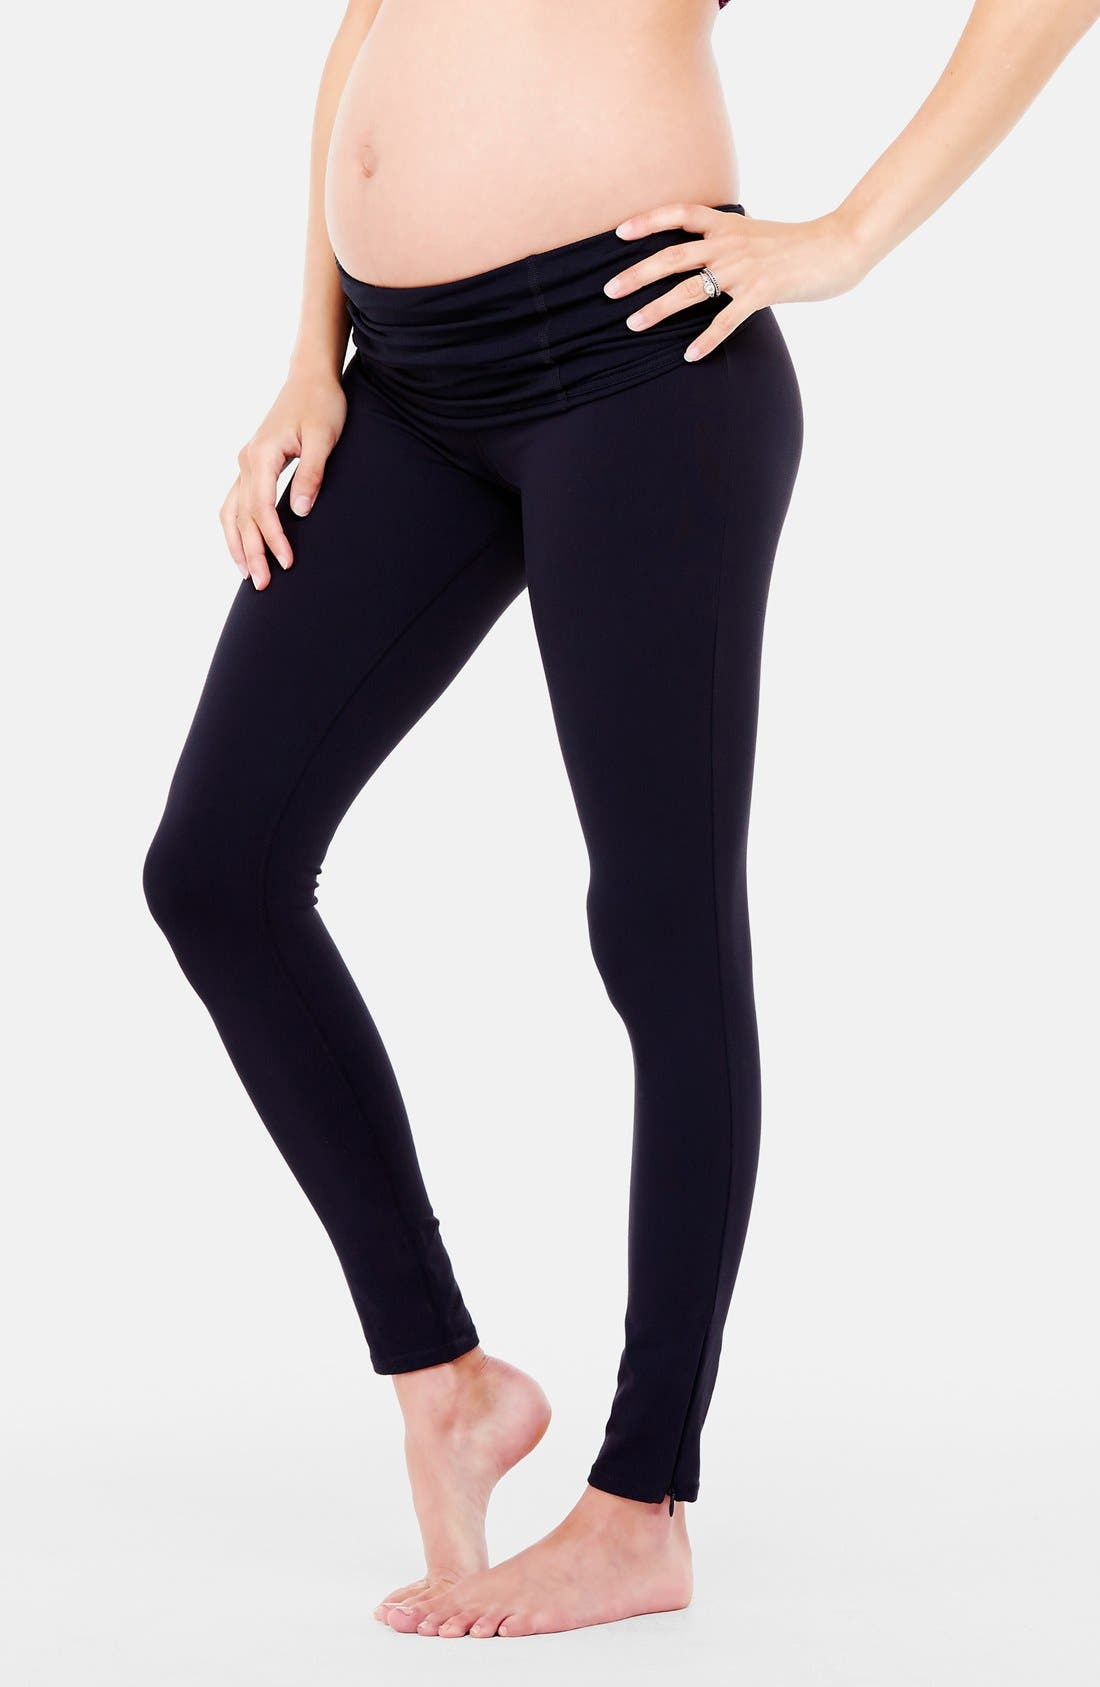 Ingrid & IsabelR Women's Ingrid & Isabel 'Active' Maternity Leggings With Crossover Panel,  Small - Black